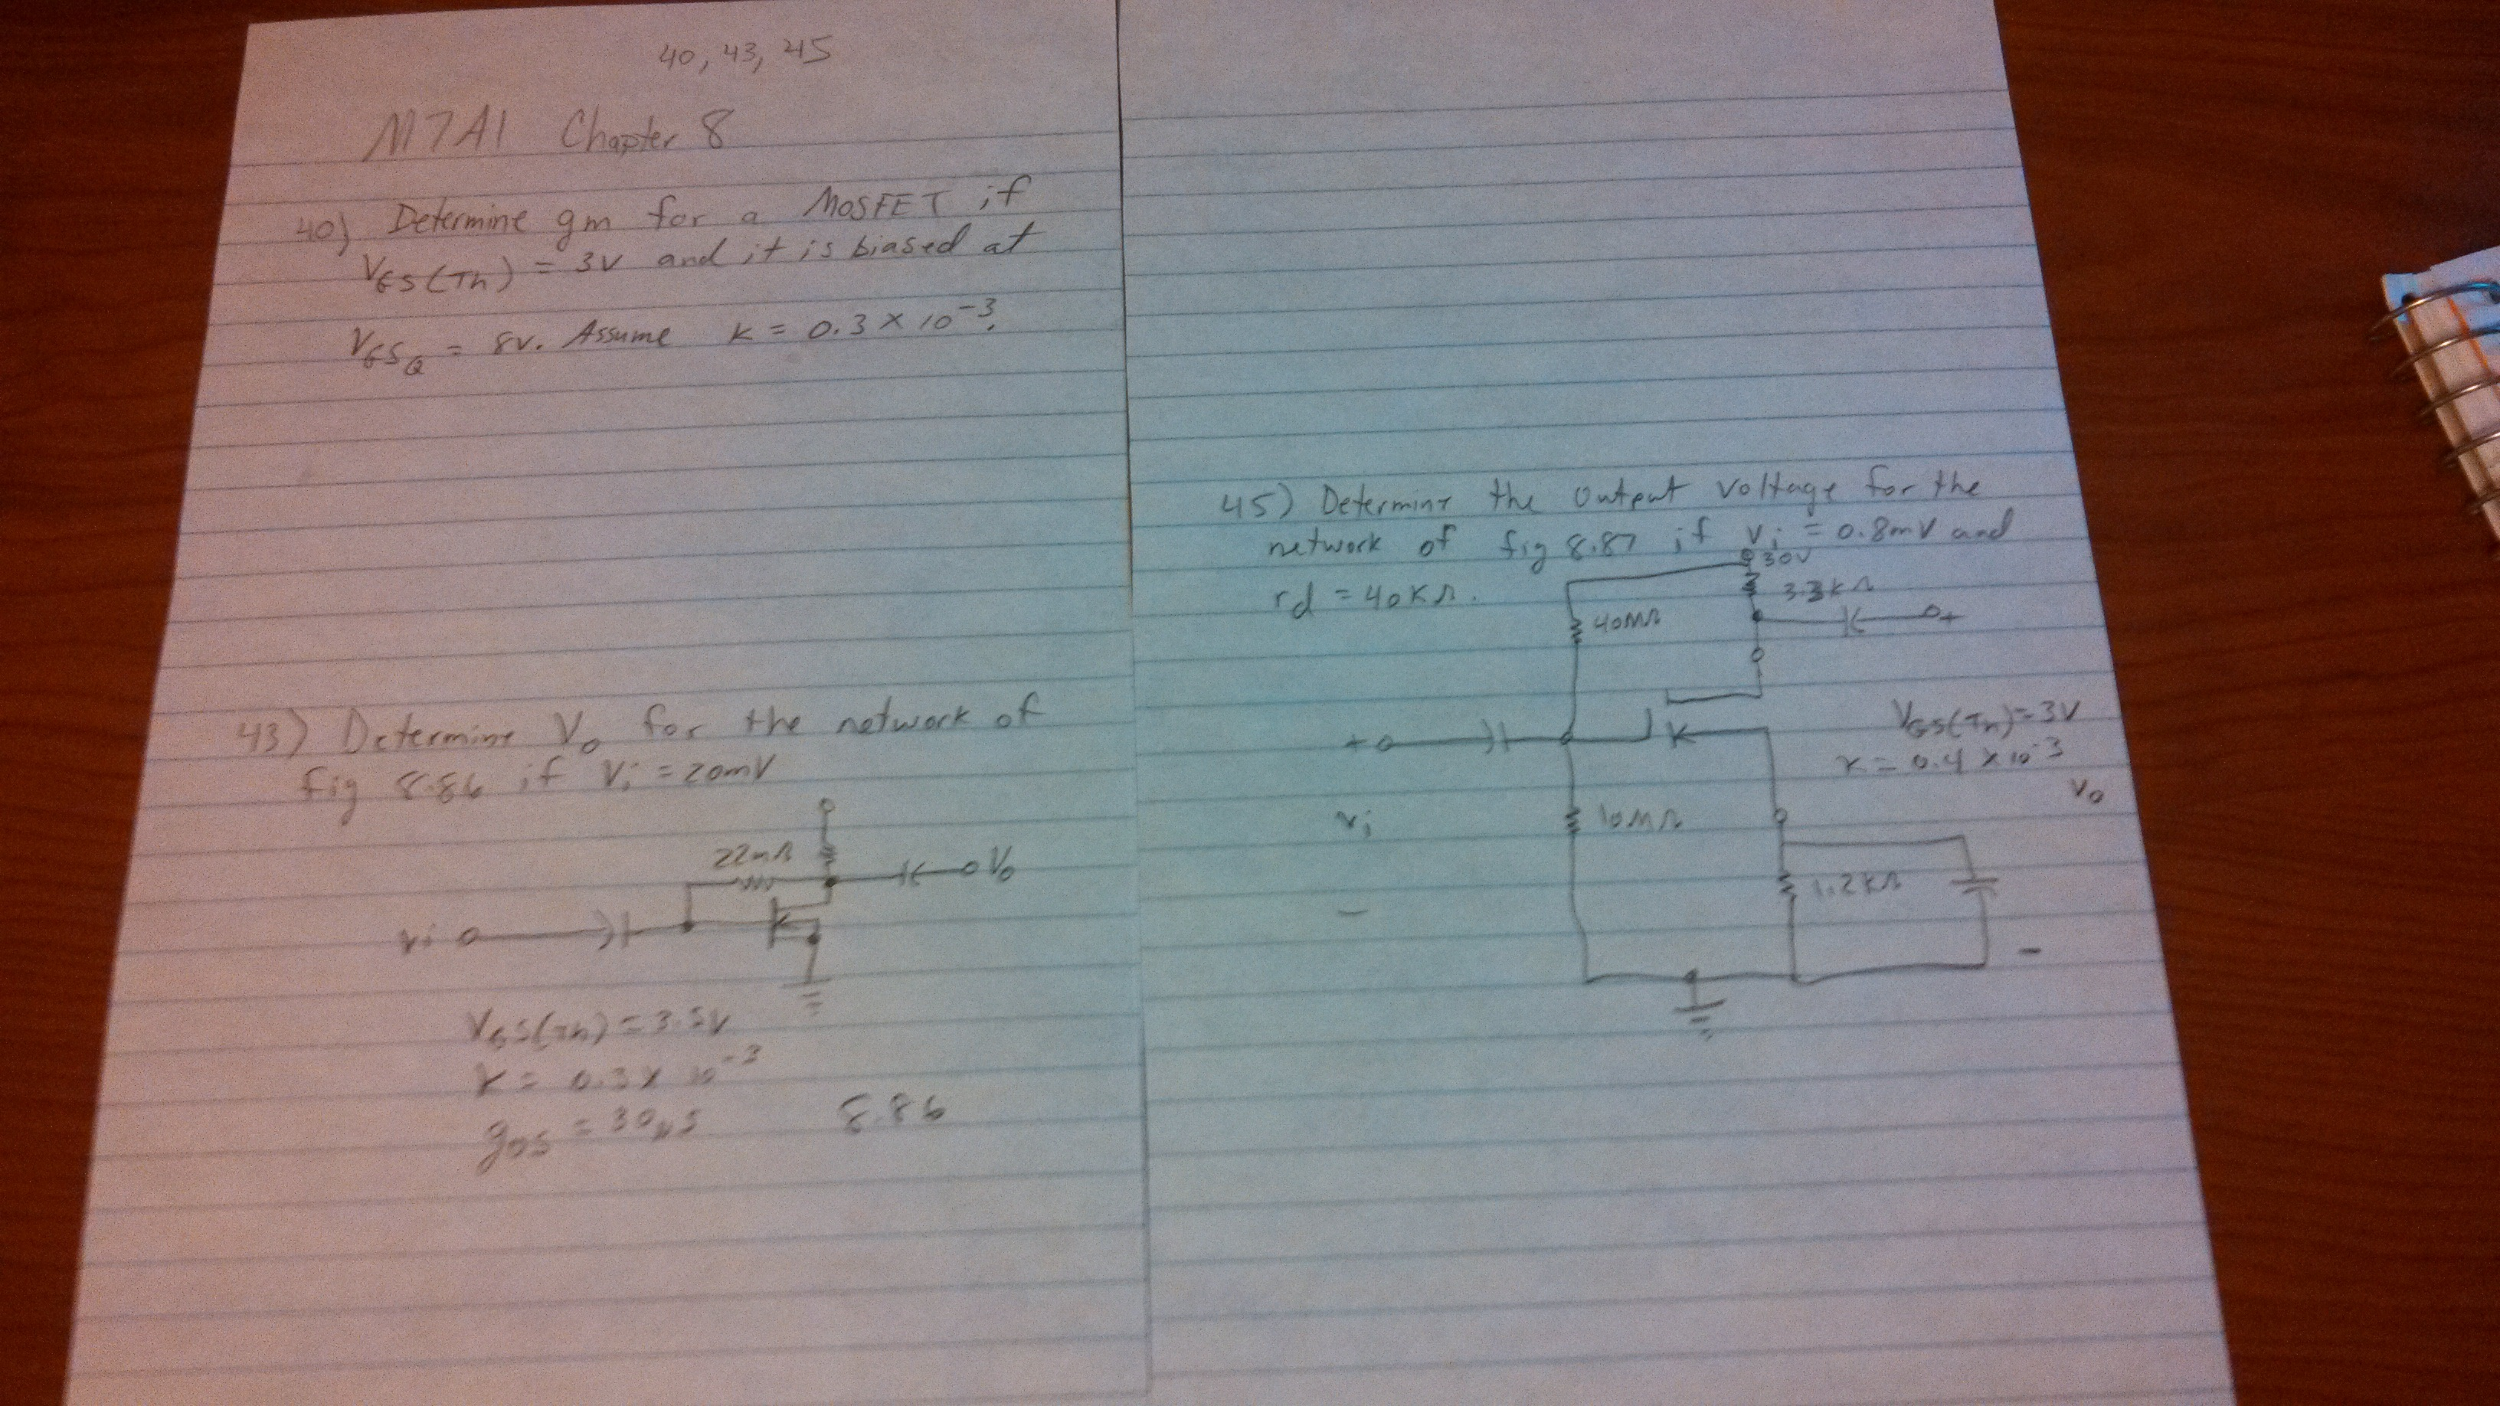 Determine gm for a mosfet if ves(tn) = 3v and it i